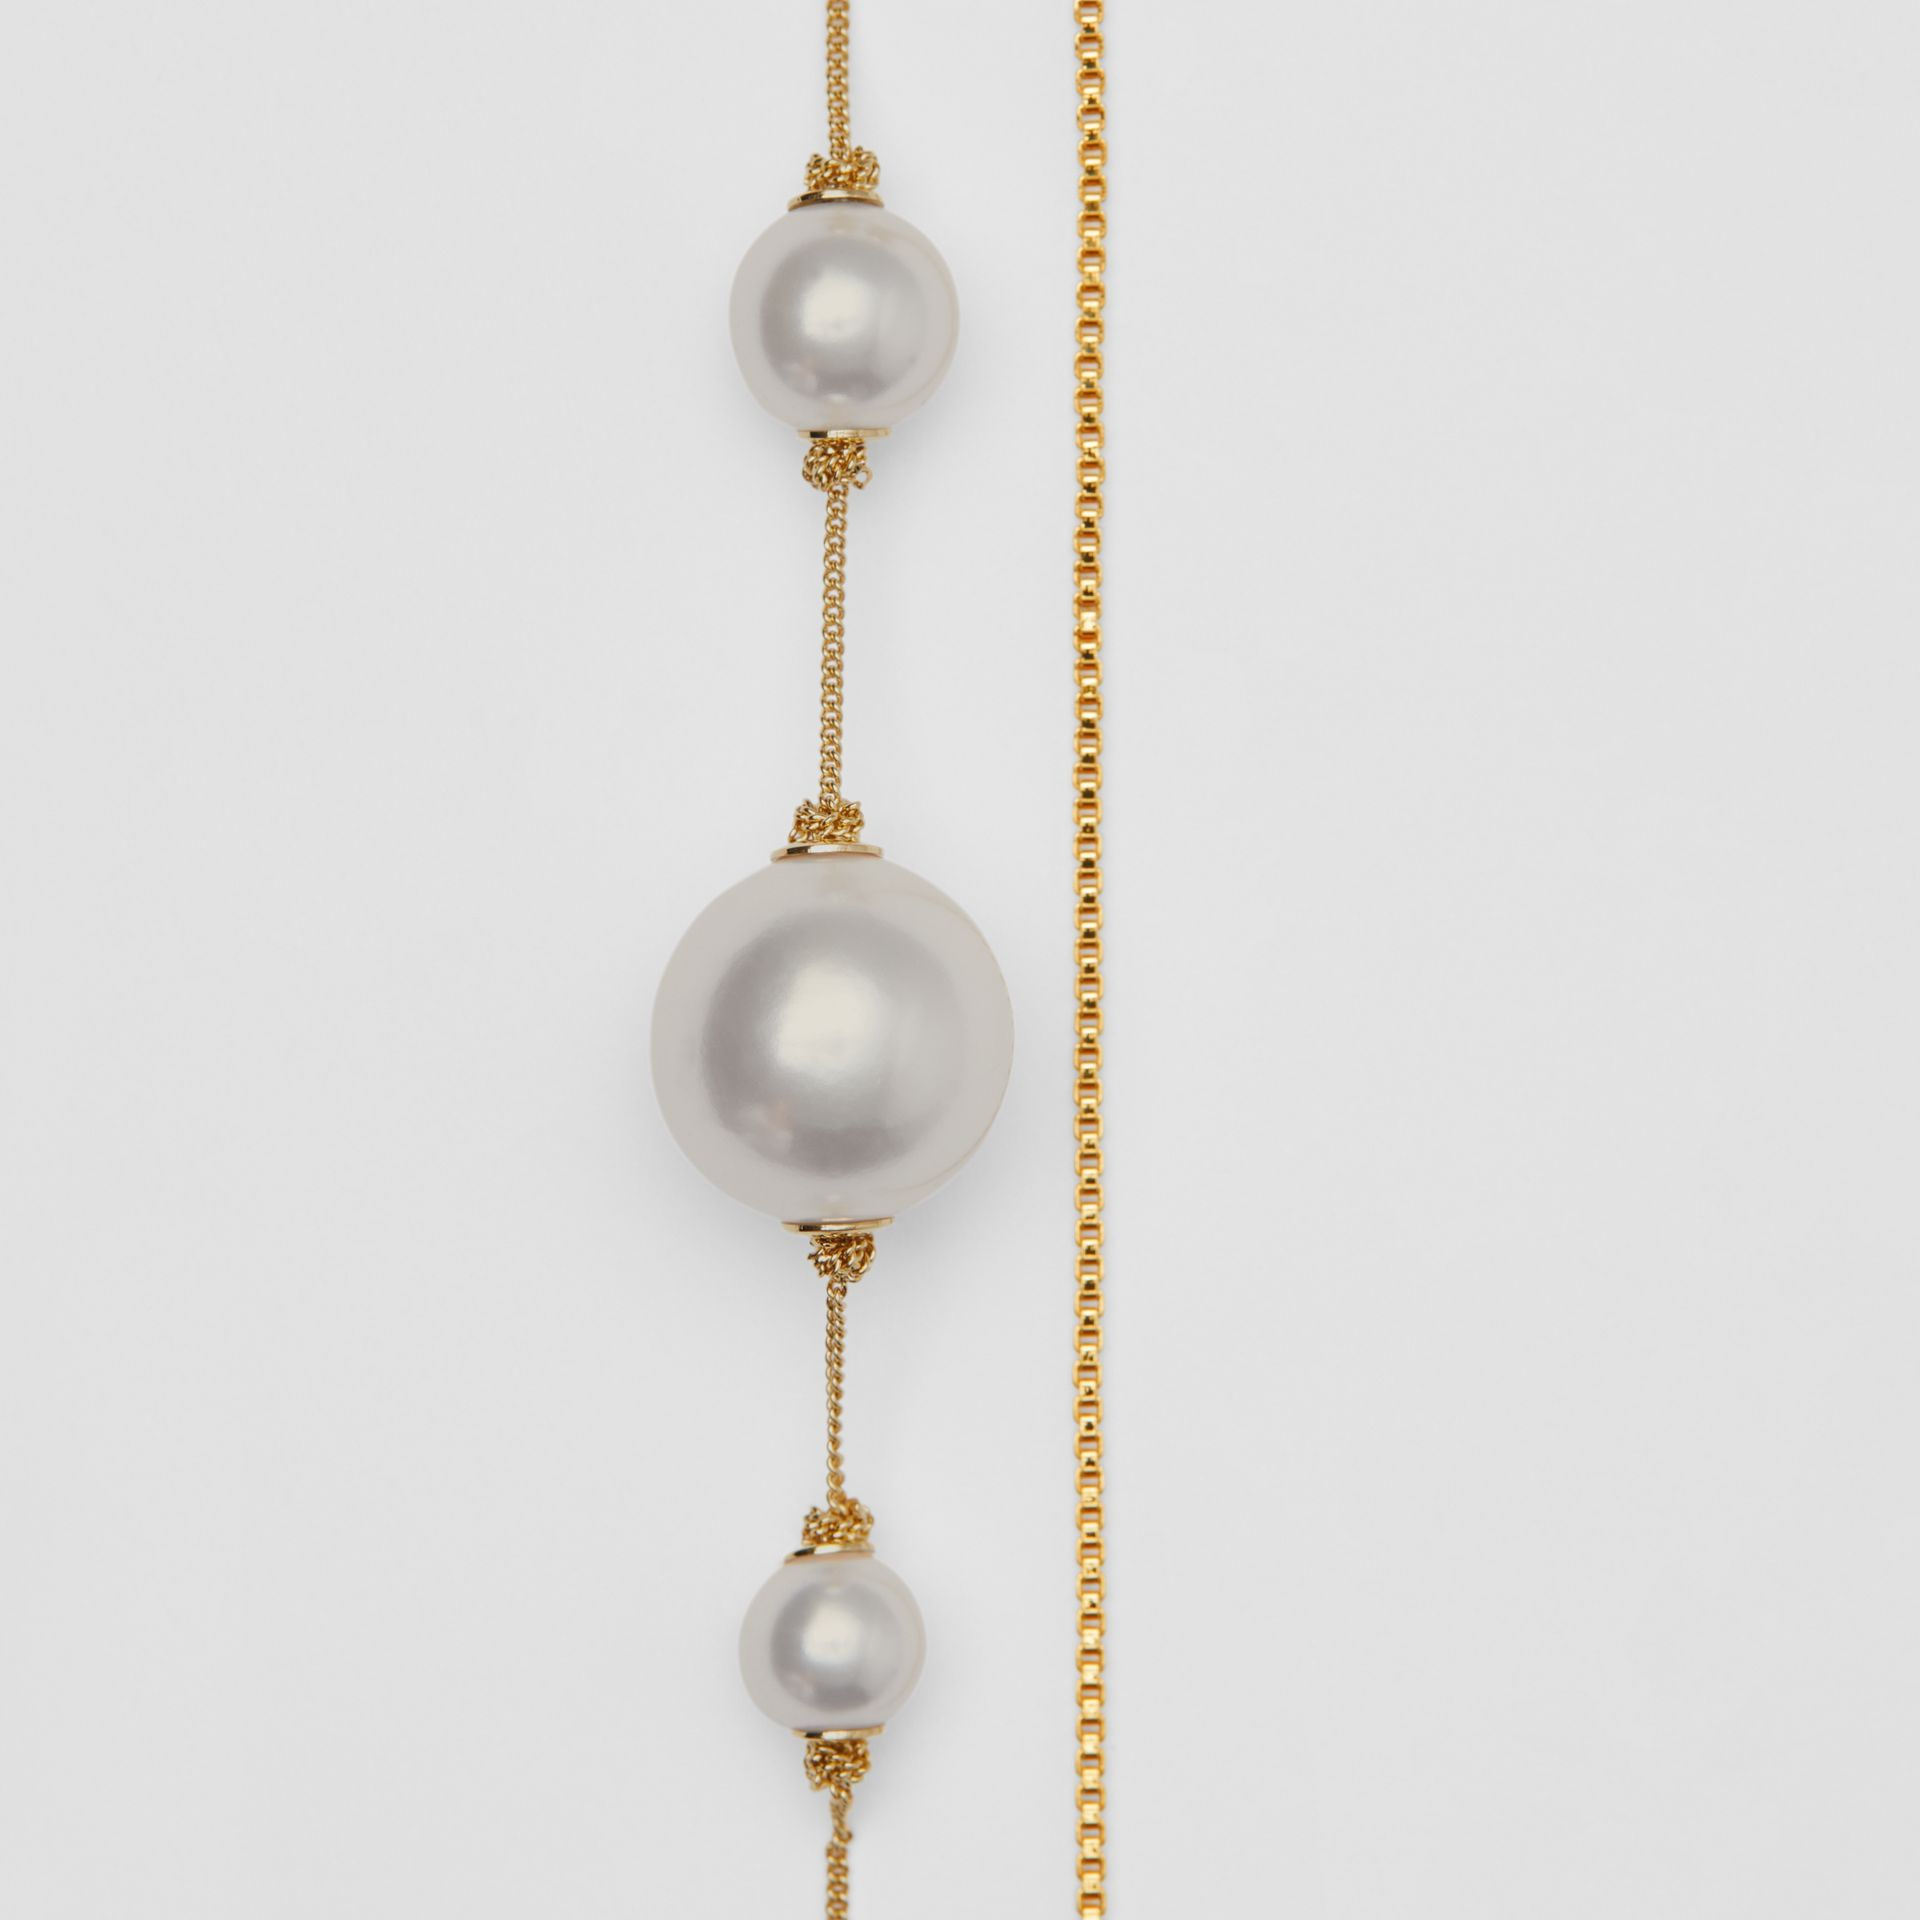 Faux Pearl and Oval Gold-plated Drop Earrings in Light - Women | Burberry Canada - gallery image 2